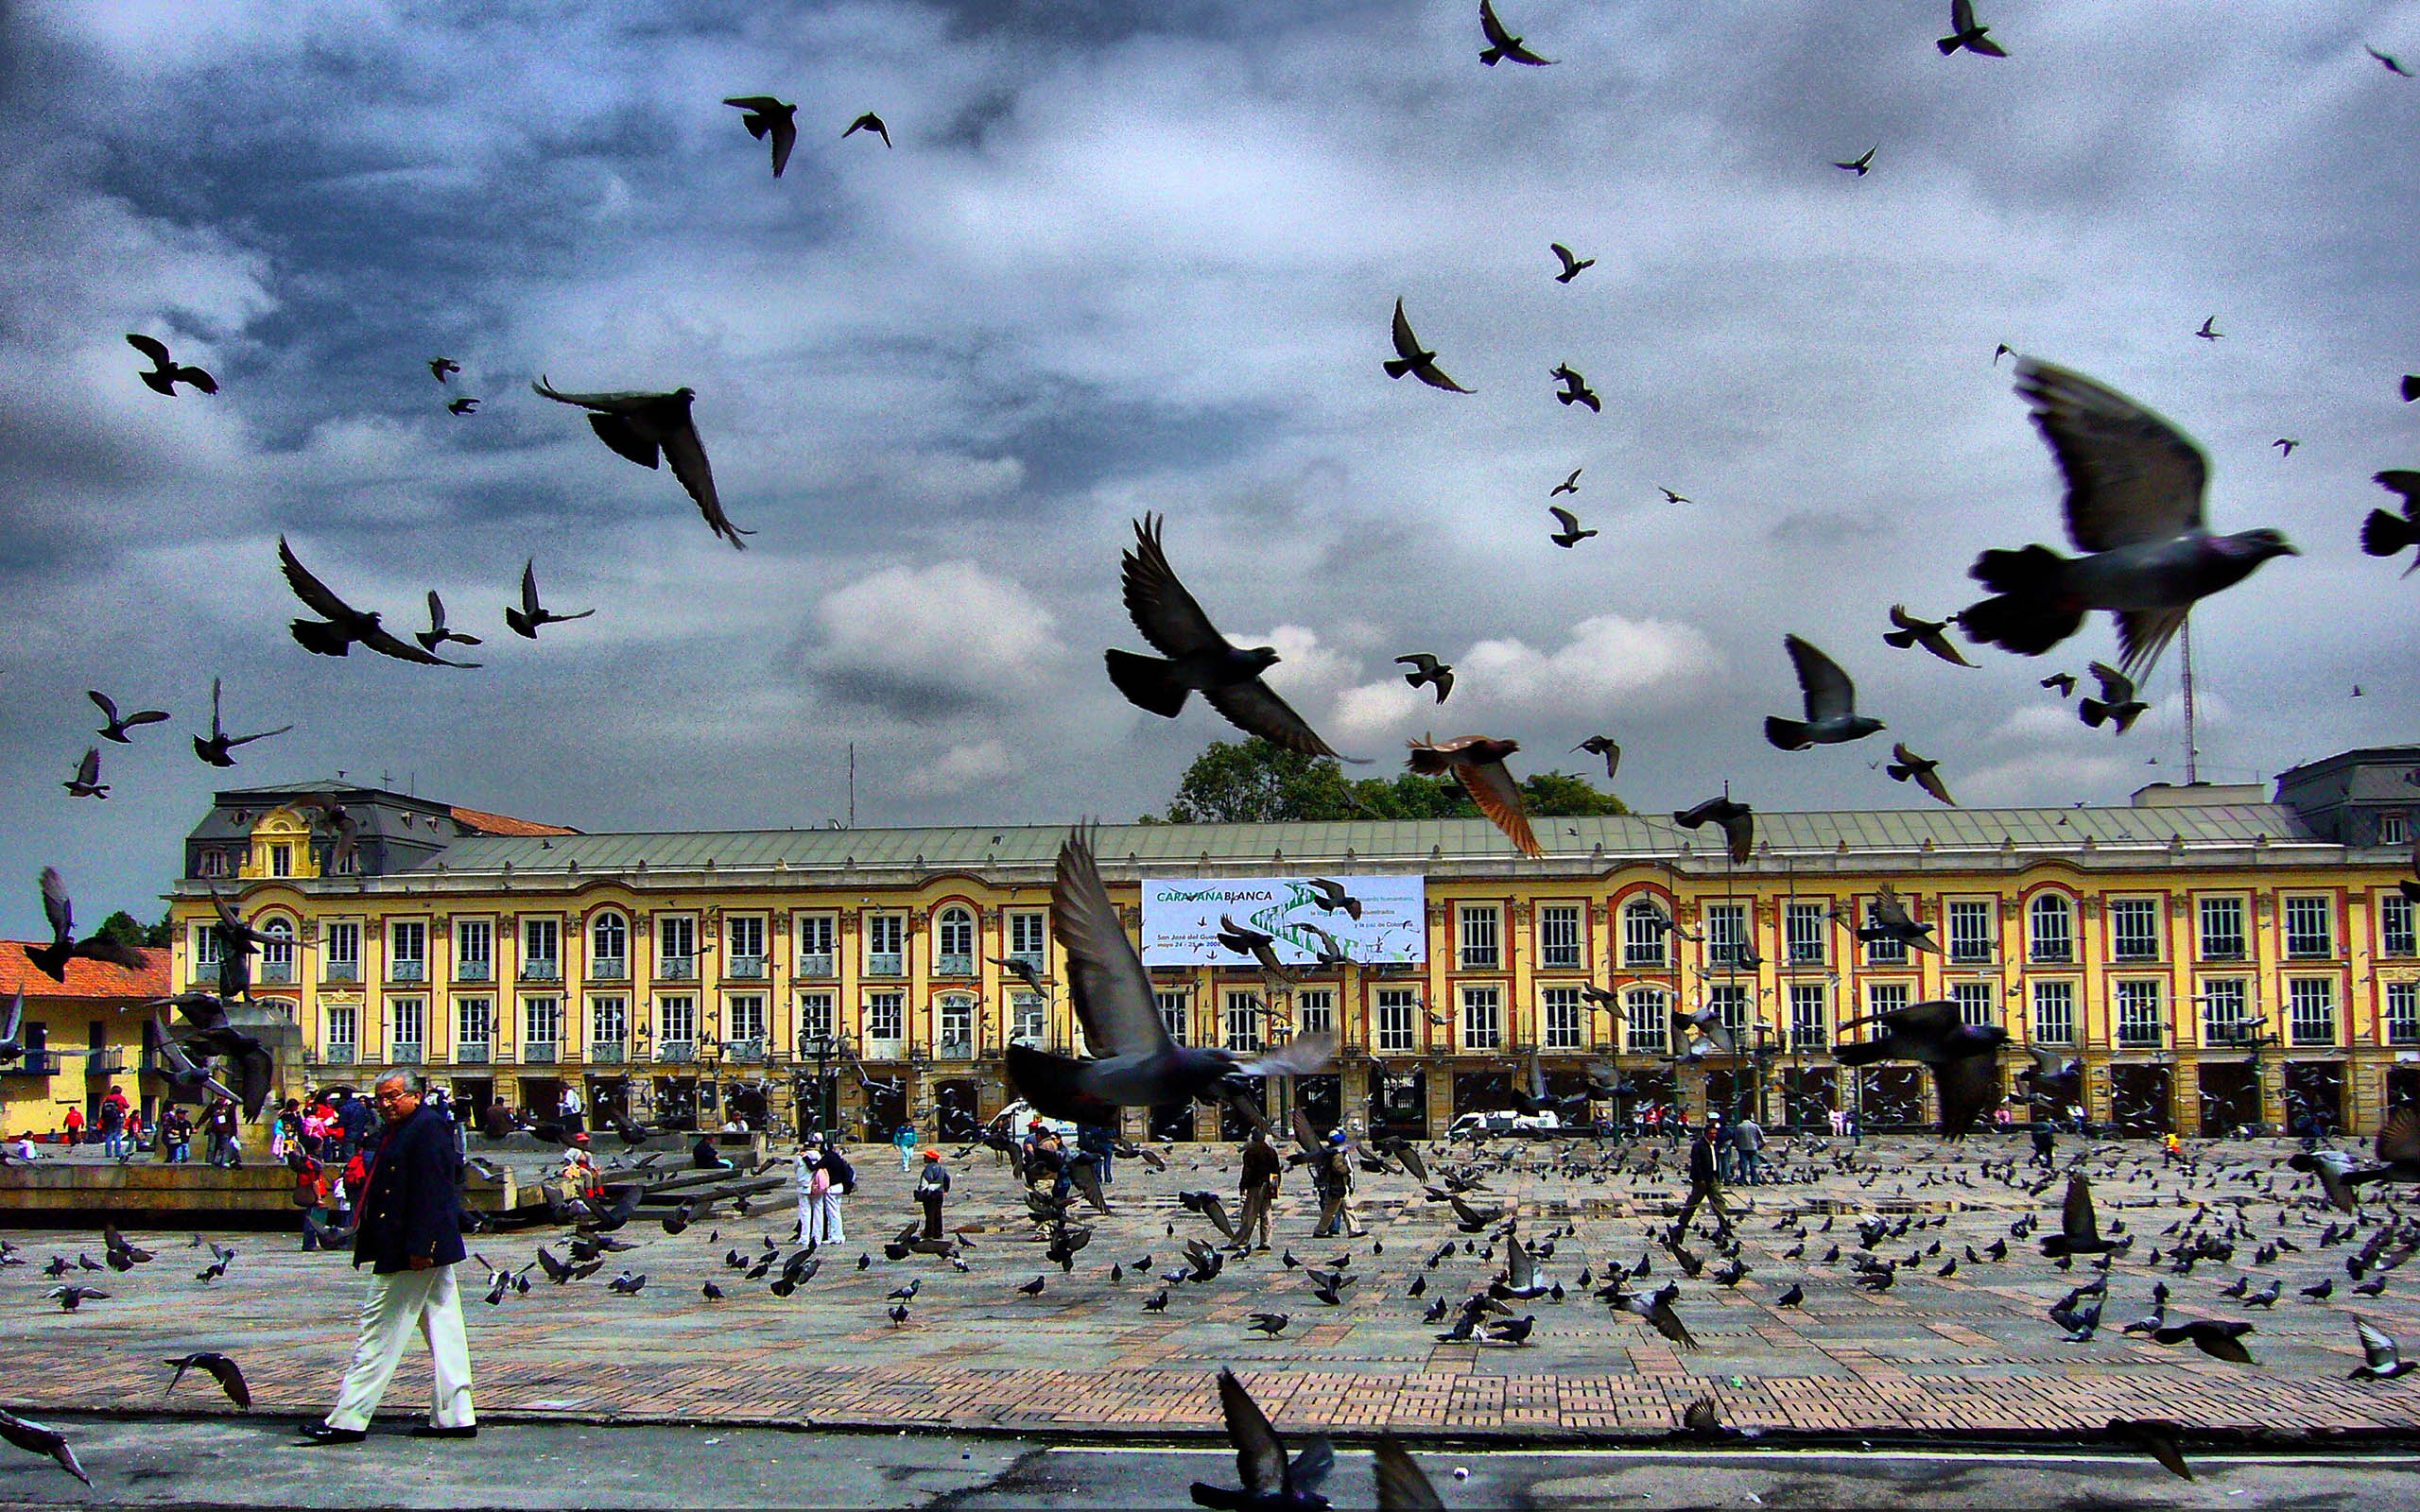 Square Pigeon Bogota   Colombia   Free Download from zet  HD Wallpaper